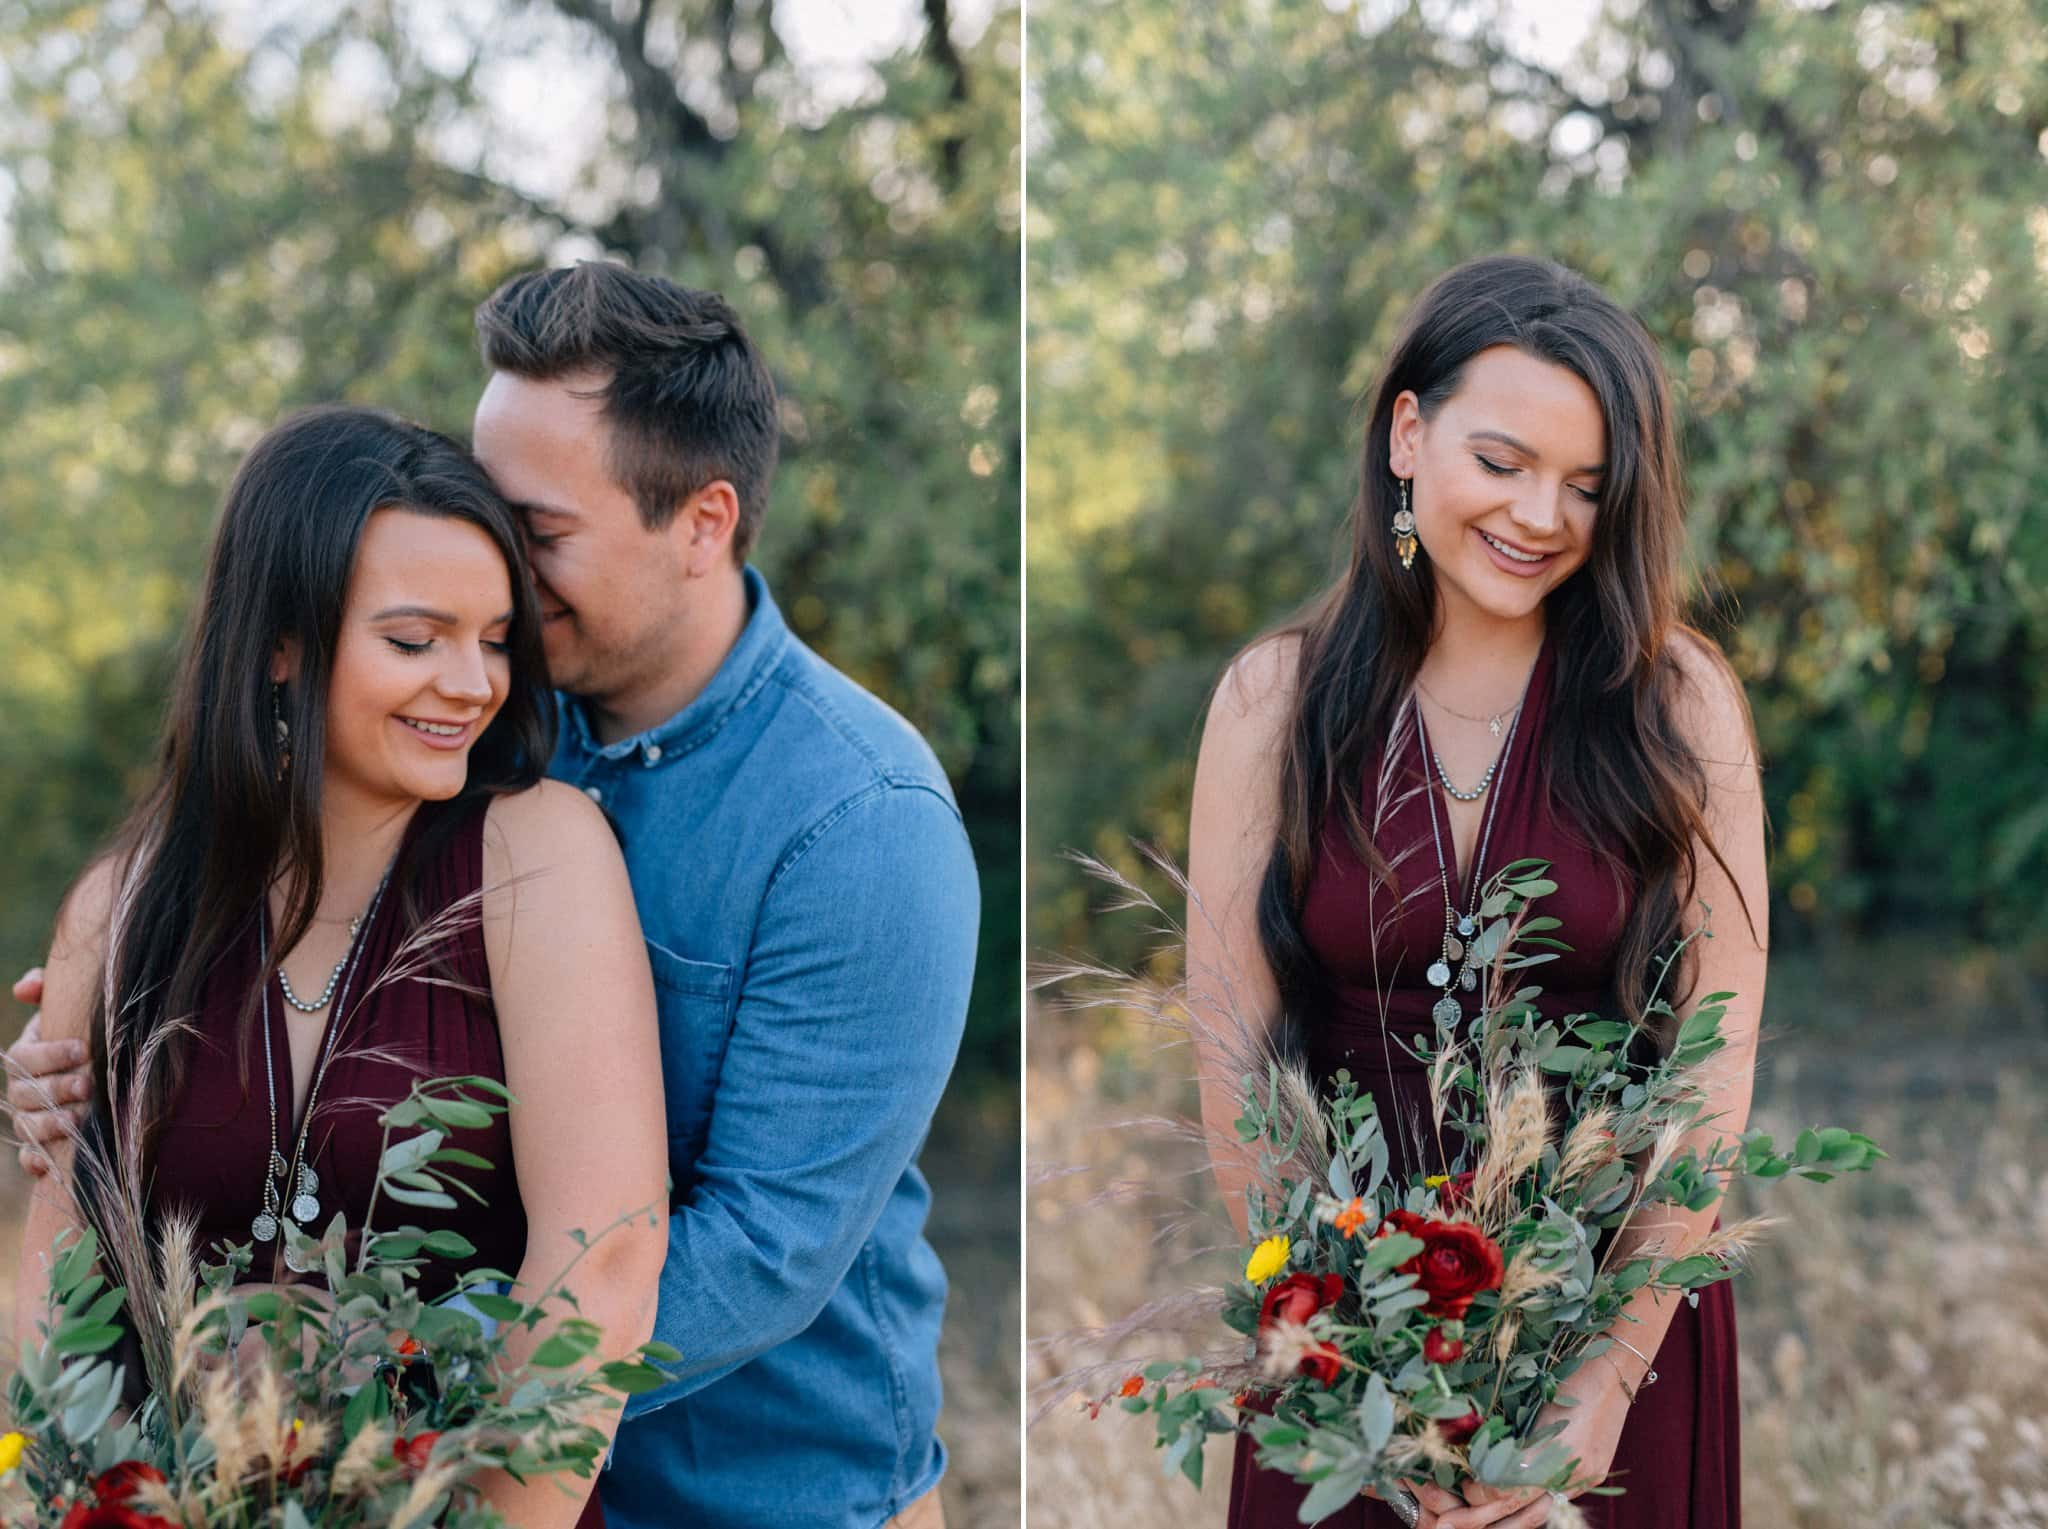 Arizona elopement red dress boho style